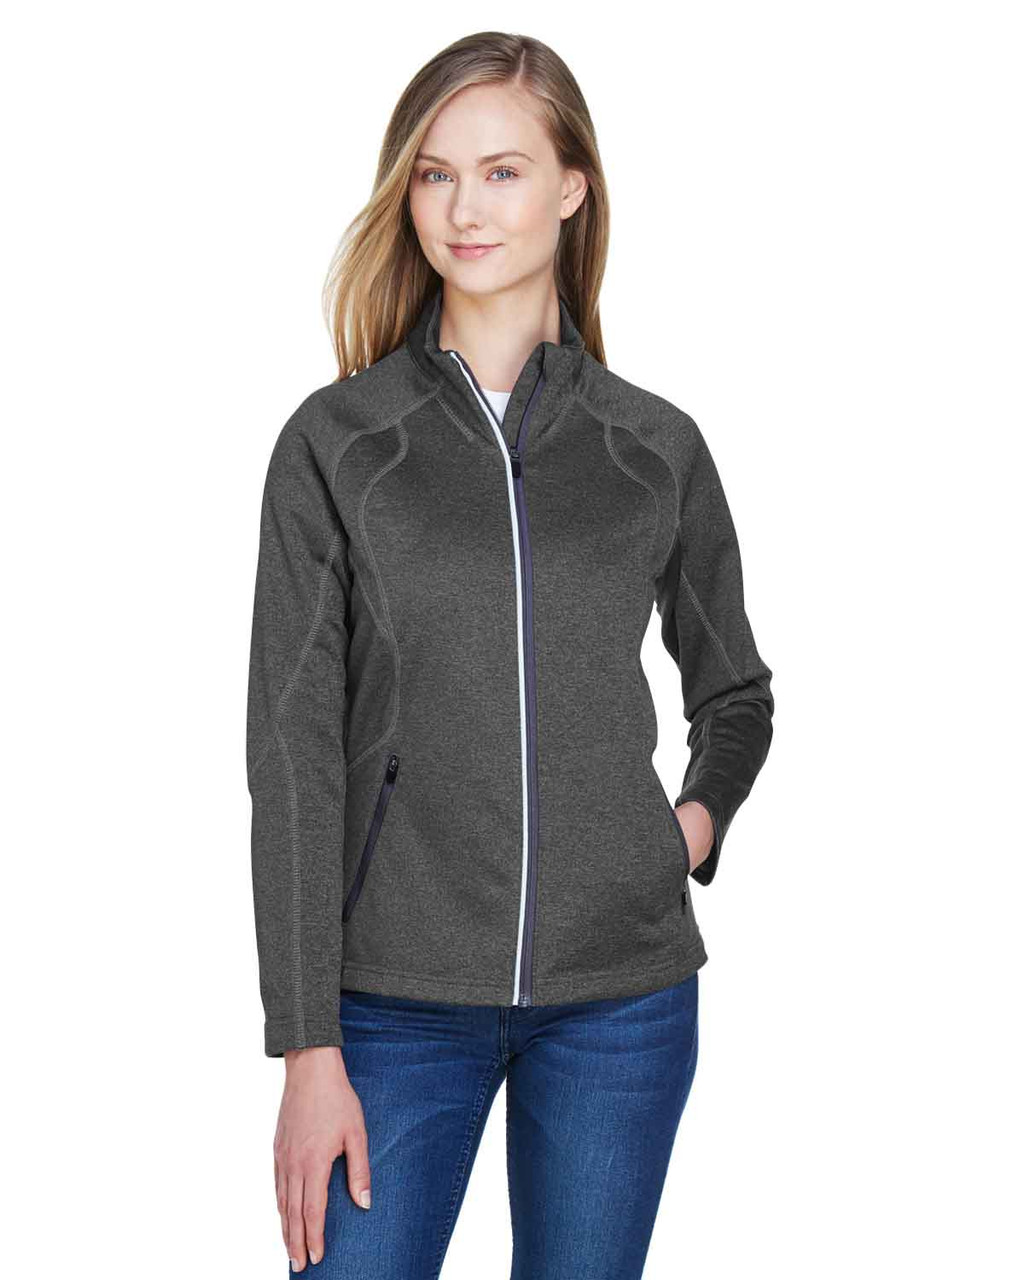 Carbon Heather - 78174 North End Ladies' Gravity Performance Fleece Jacket | BlankClothing.ca